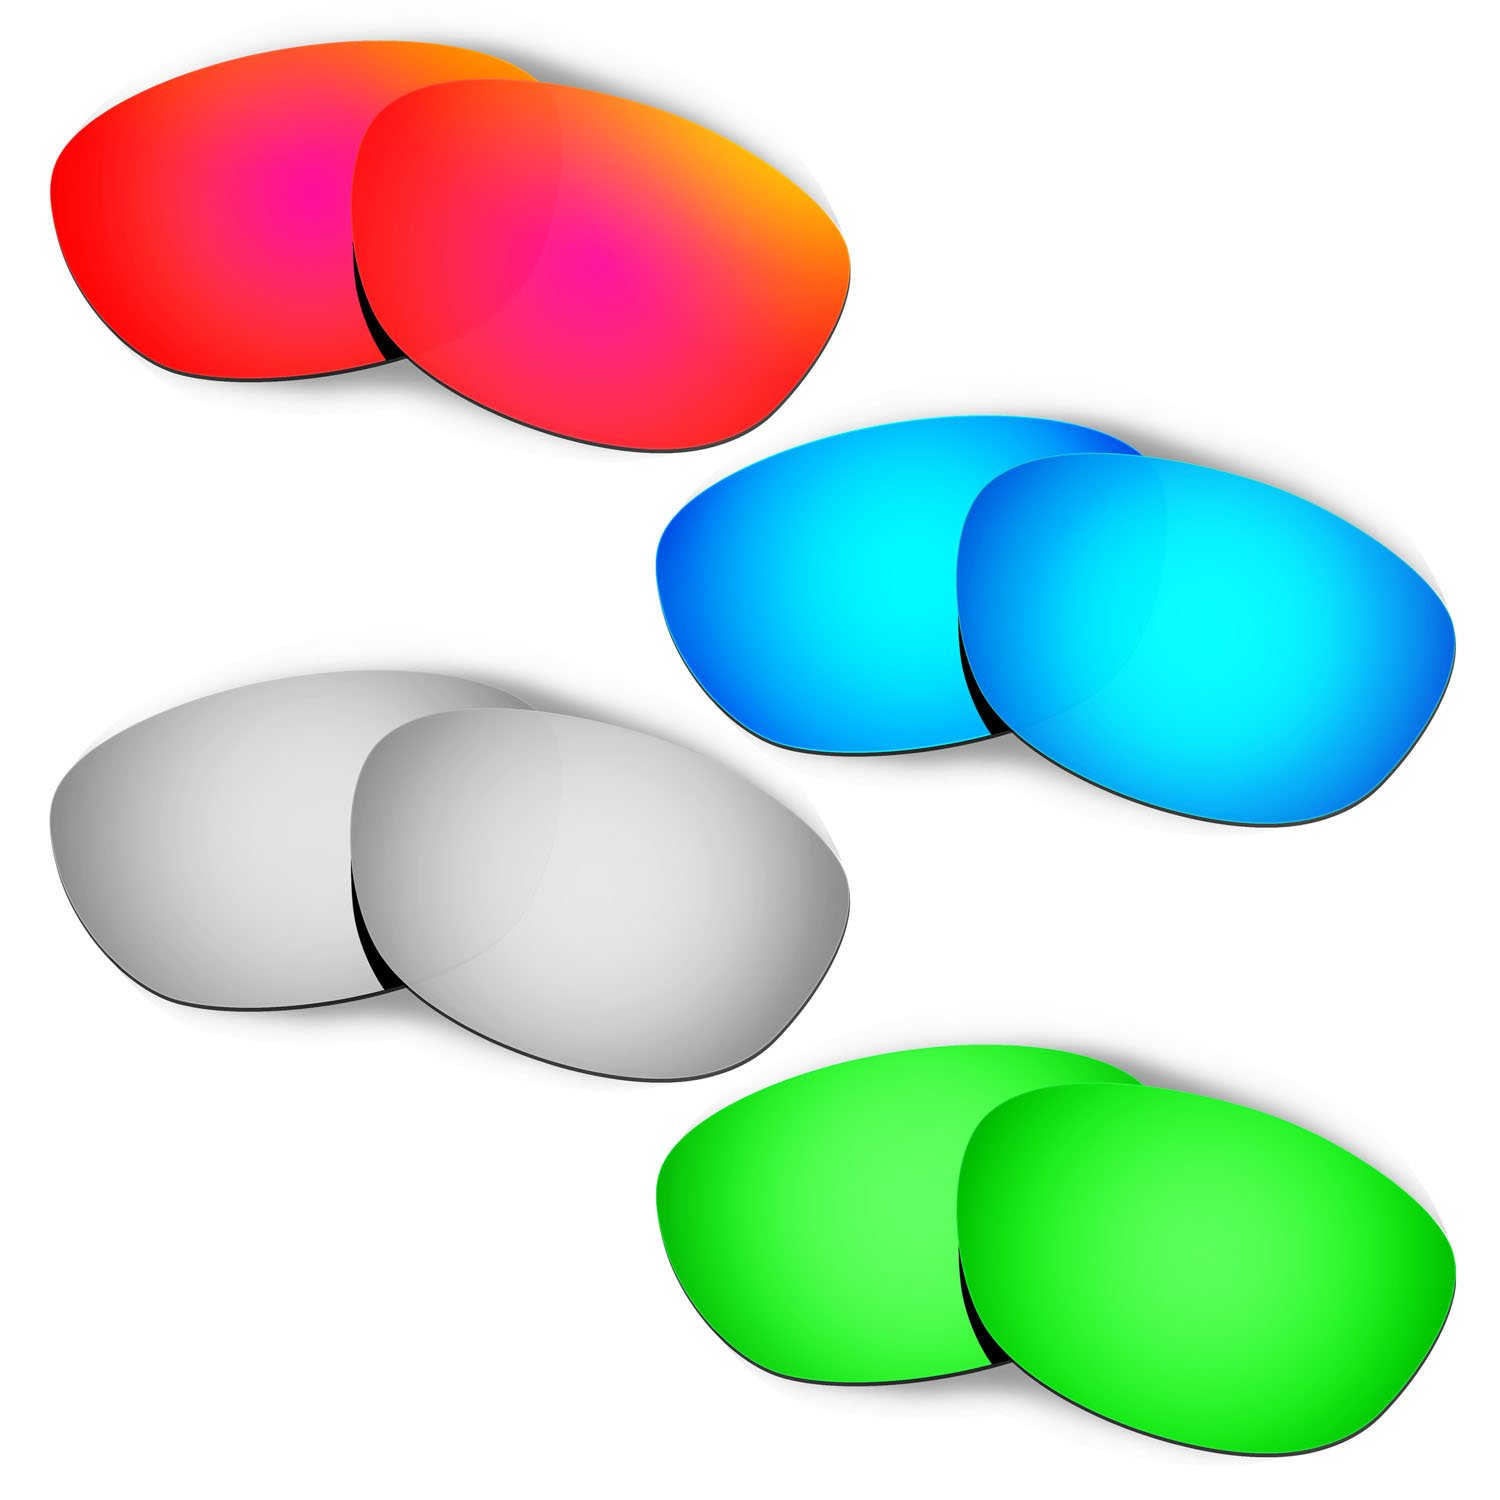 Hkuco Plus Mens Replacement Lenses For Oakley Fives 2.0 Red/Blue/Titanium/Emerald Green Sunglasses